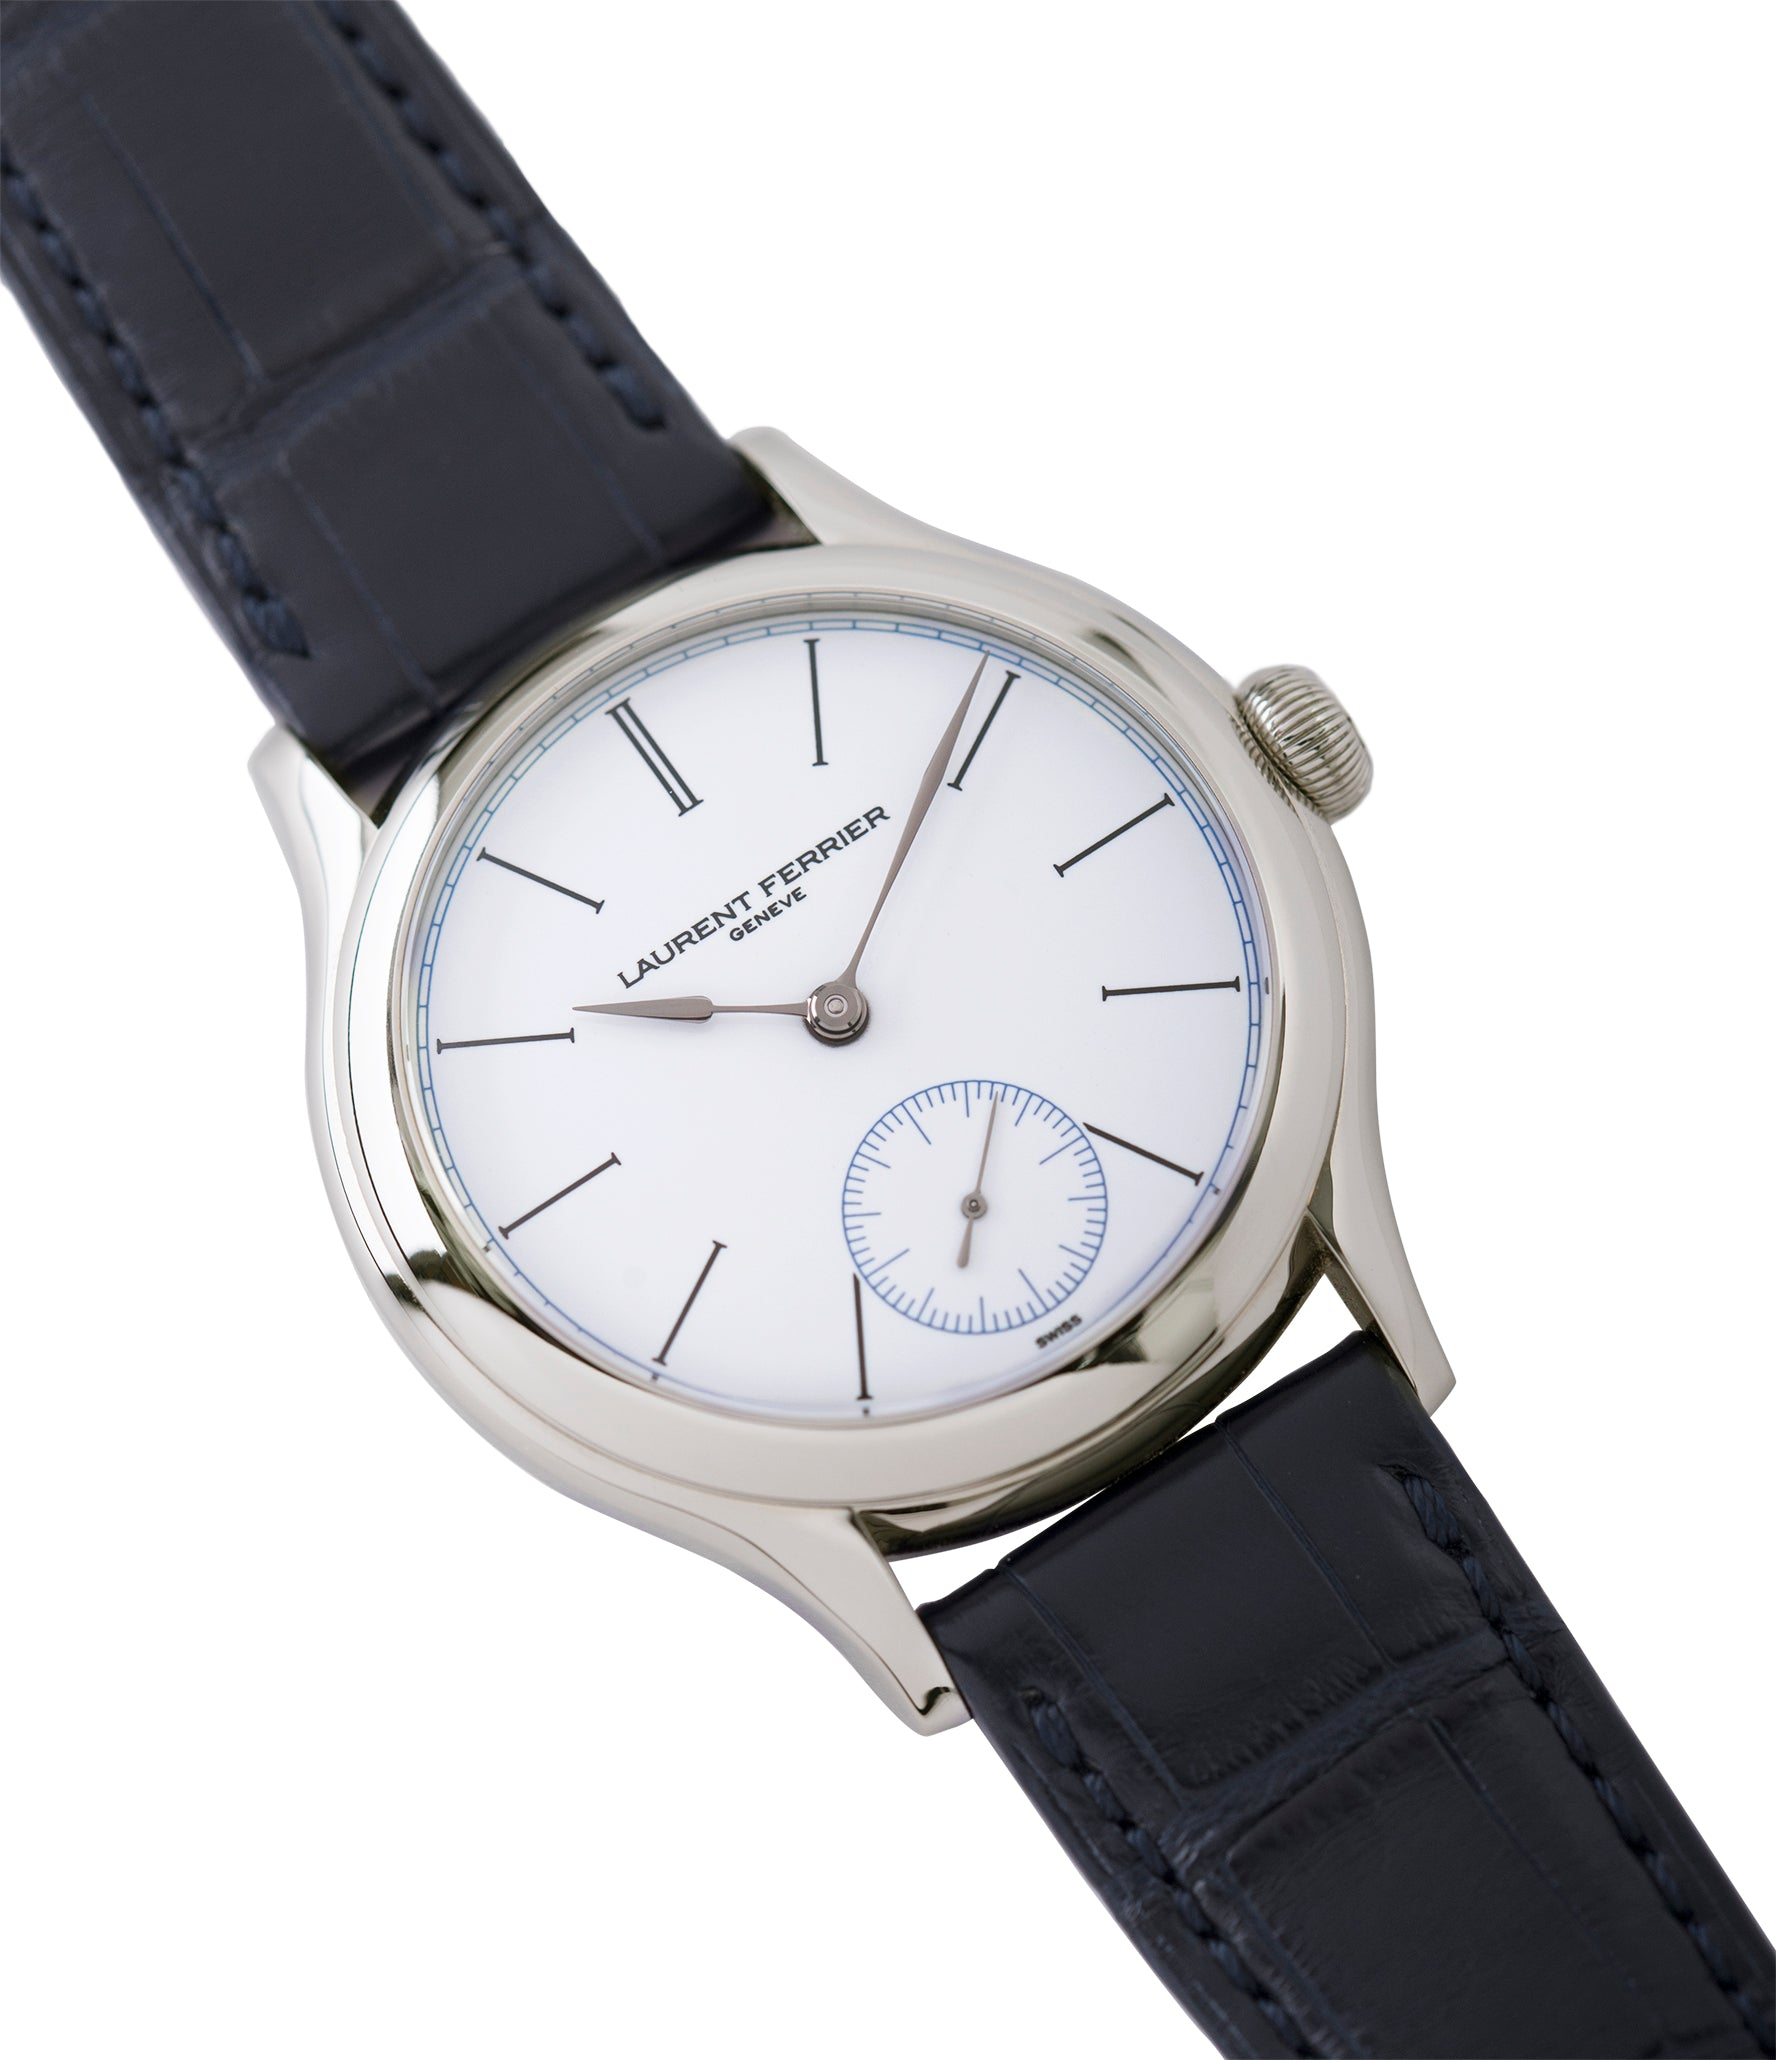 shop Laurent Ferrier Galet Micro-Rotor FBN 230.02 Enamel dial steel watch for sale online at A Collected Man London UK approved seller of independent watchmaker Laurent Ferrier